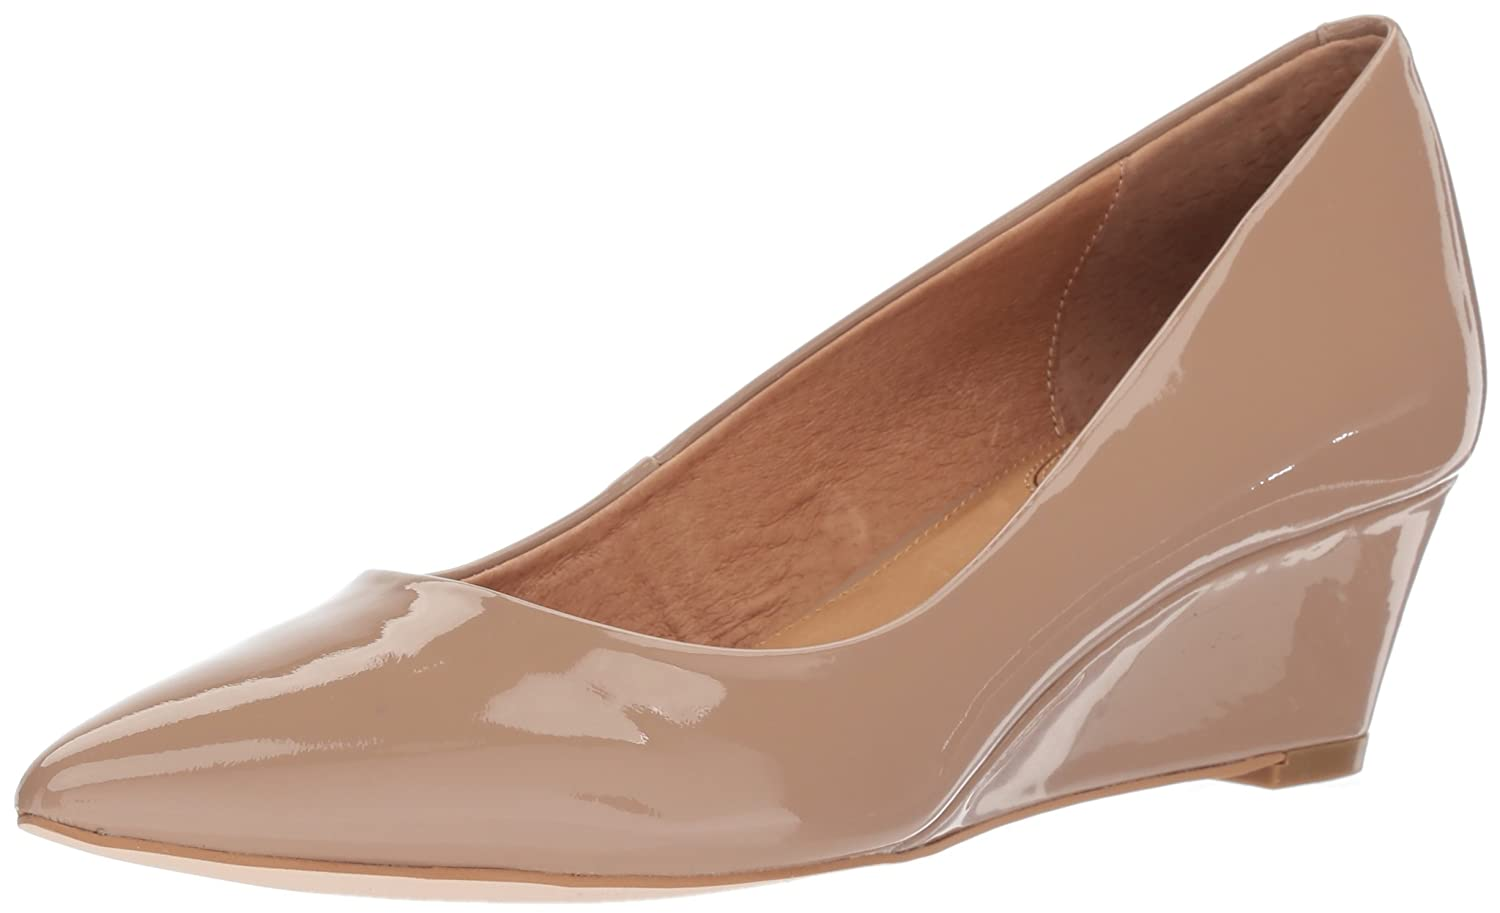 Opportunity Shoes - Corso Como Women's Nelly Pump B06XRRML2D 5.5 B(M) US|Dark Nude Soft Patent